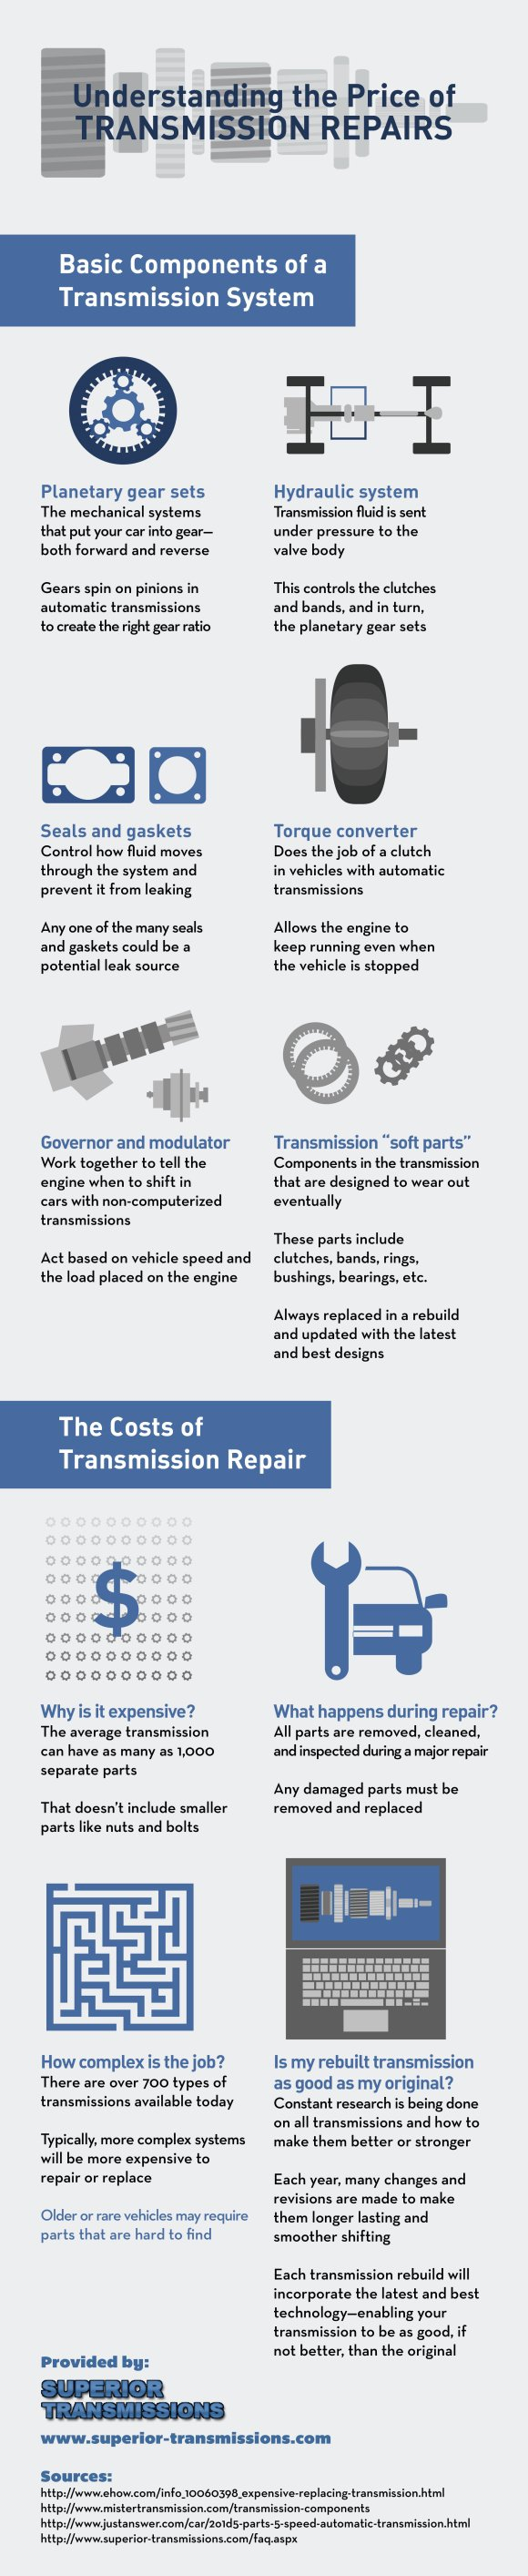 Understanding the Price of Transmission Repairs Infographic Washington DC